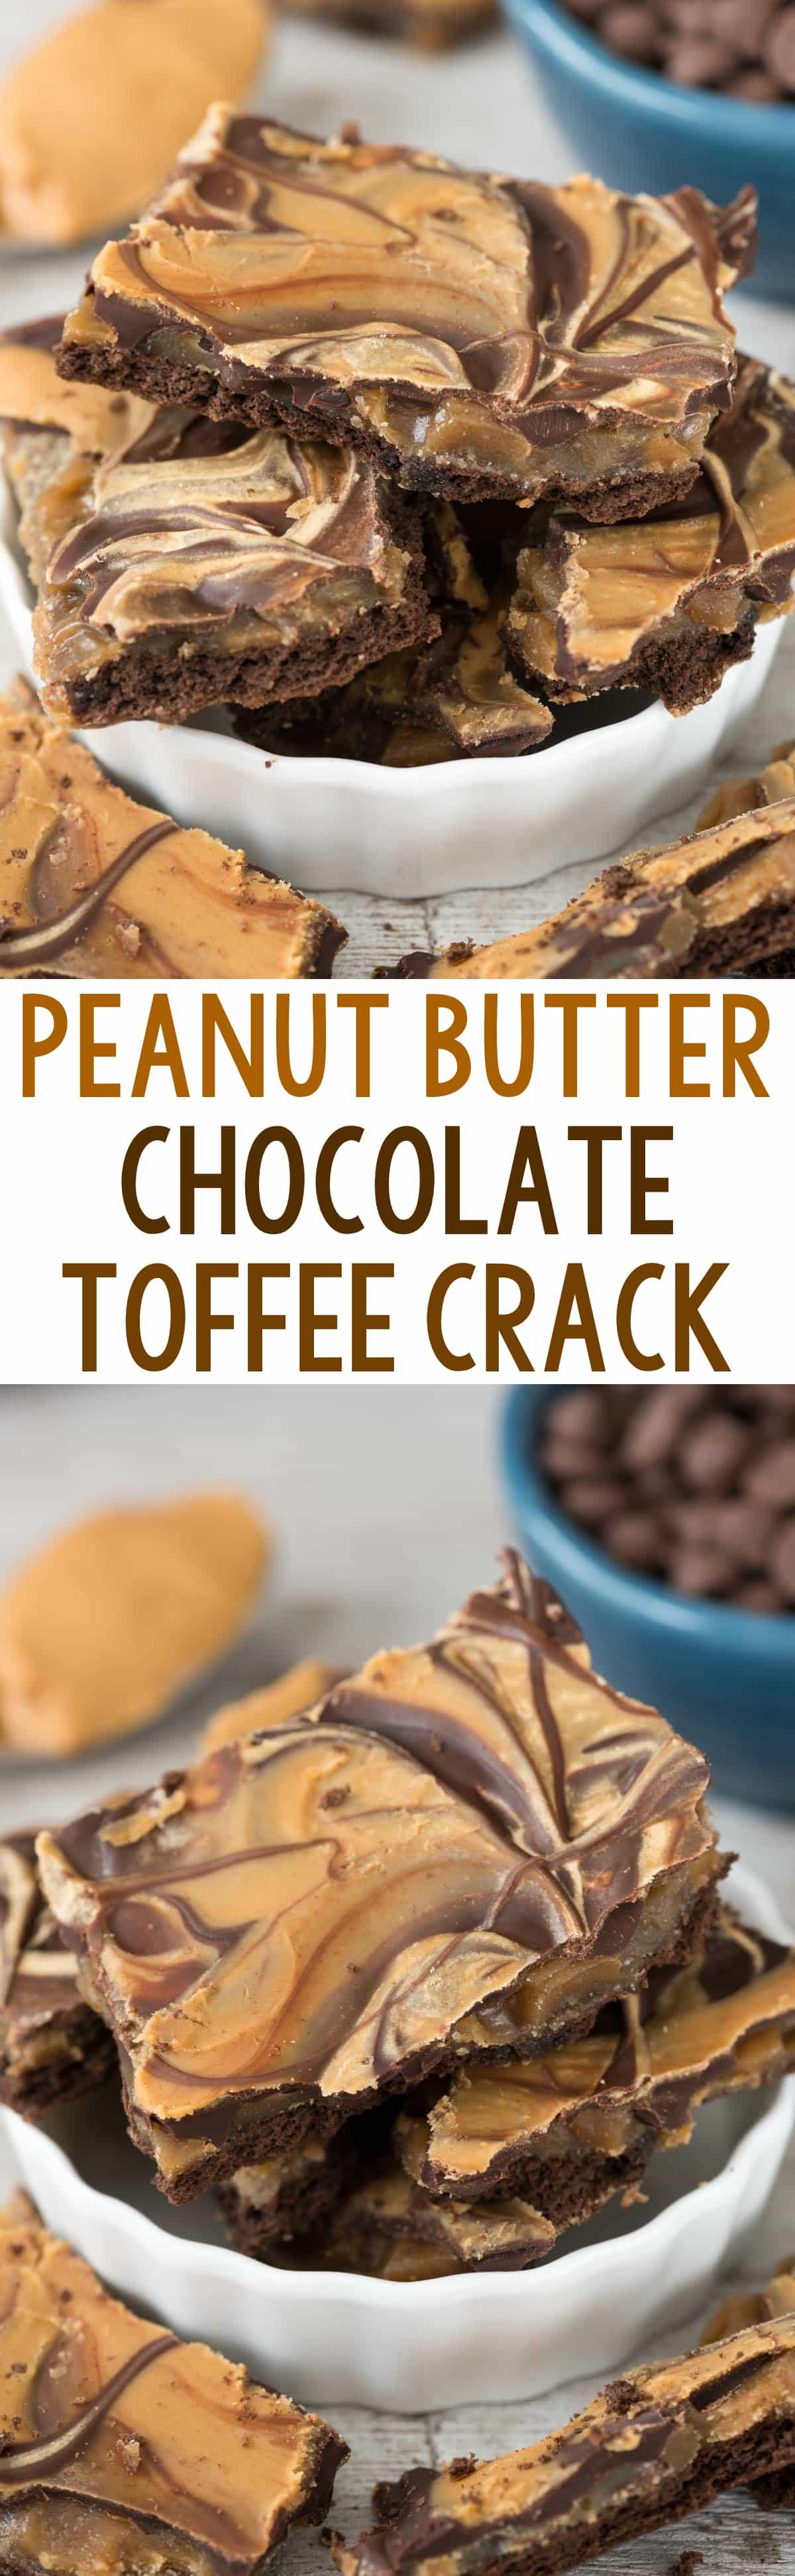 EASY Peanut Butter Chocolate Toffee Crack Bark - this is such an easy candy recipe! Toffee on top of chocolate graham crackers with chocolate chips and peanut butter.